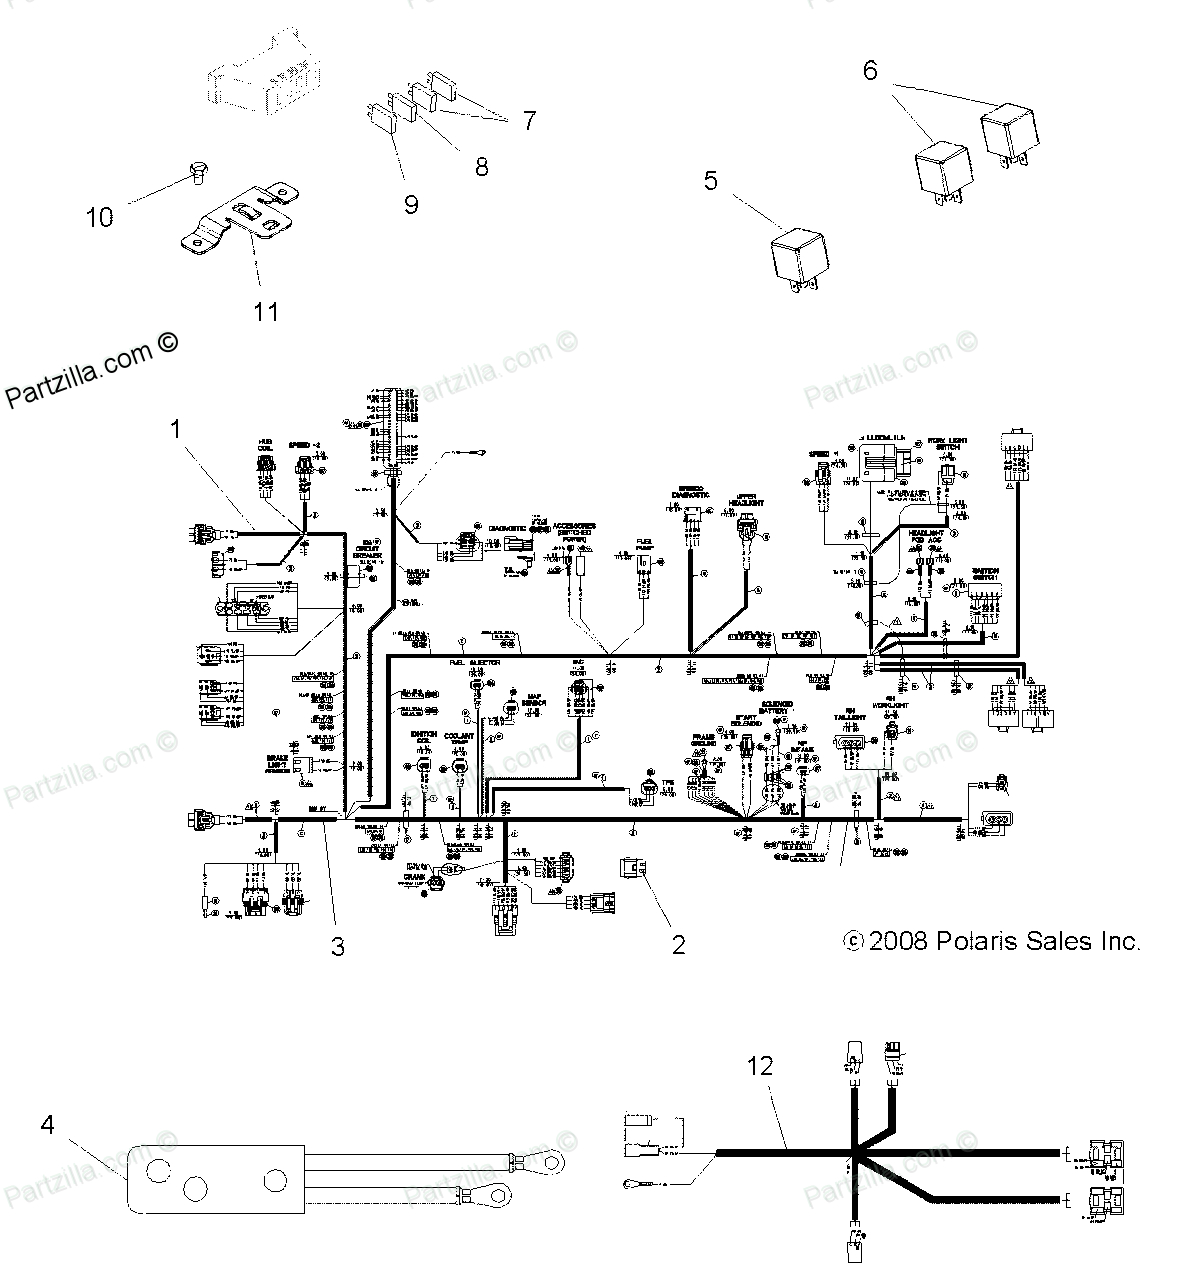 2004 polaris sportsman 400 wiring diagram sample 1999 polaris sportsman 500 igntion wiring diagram